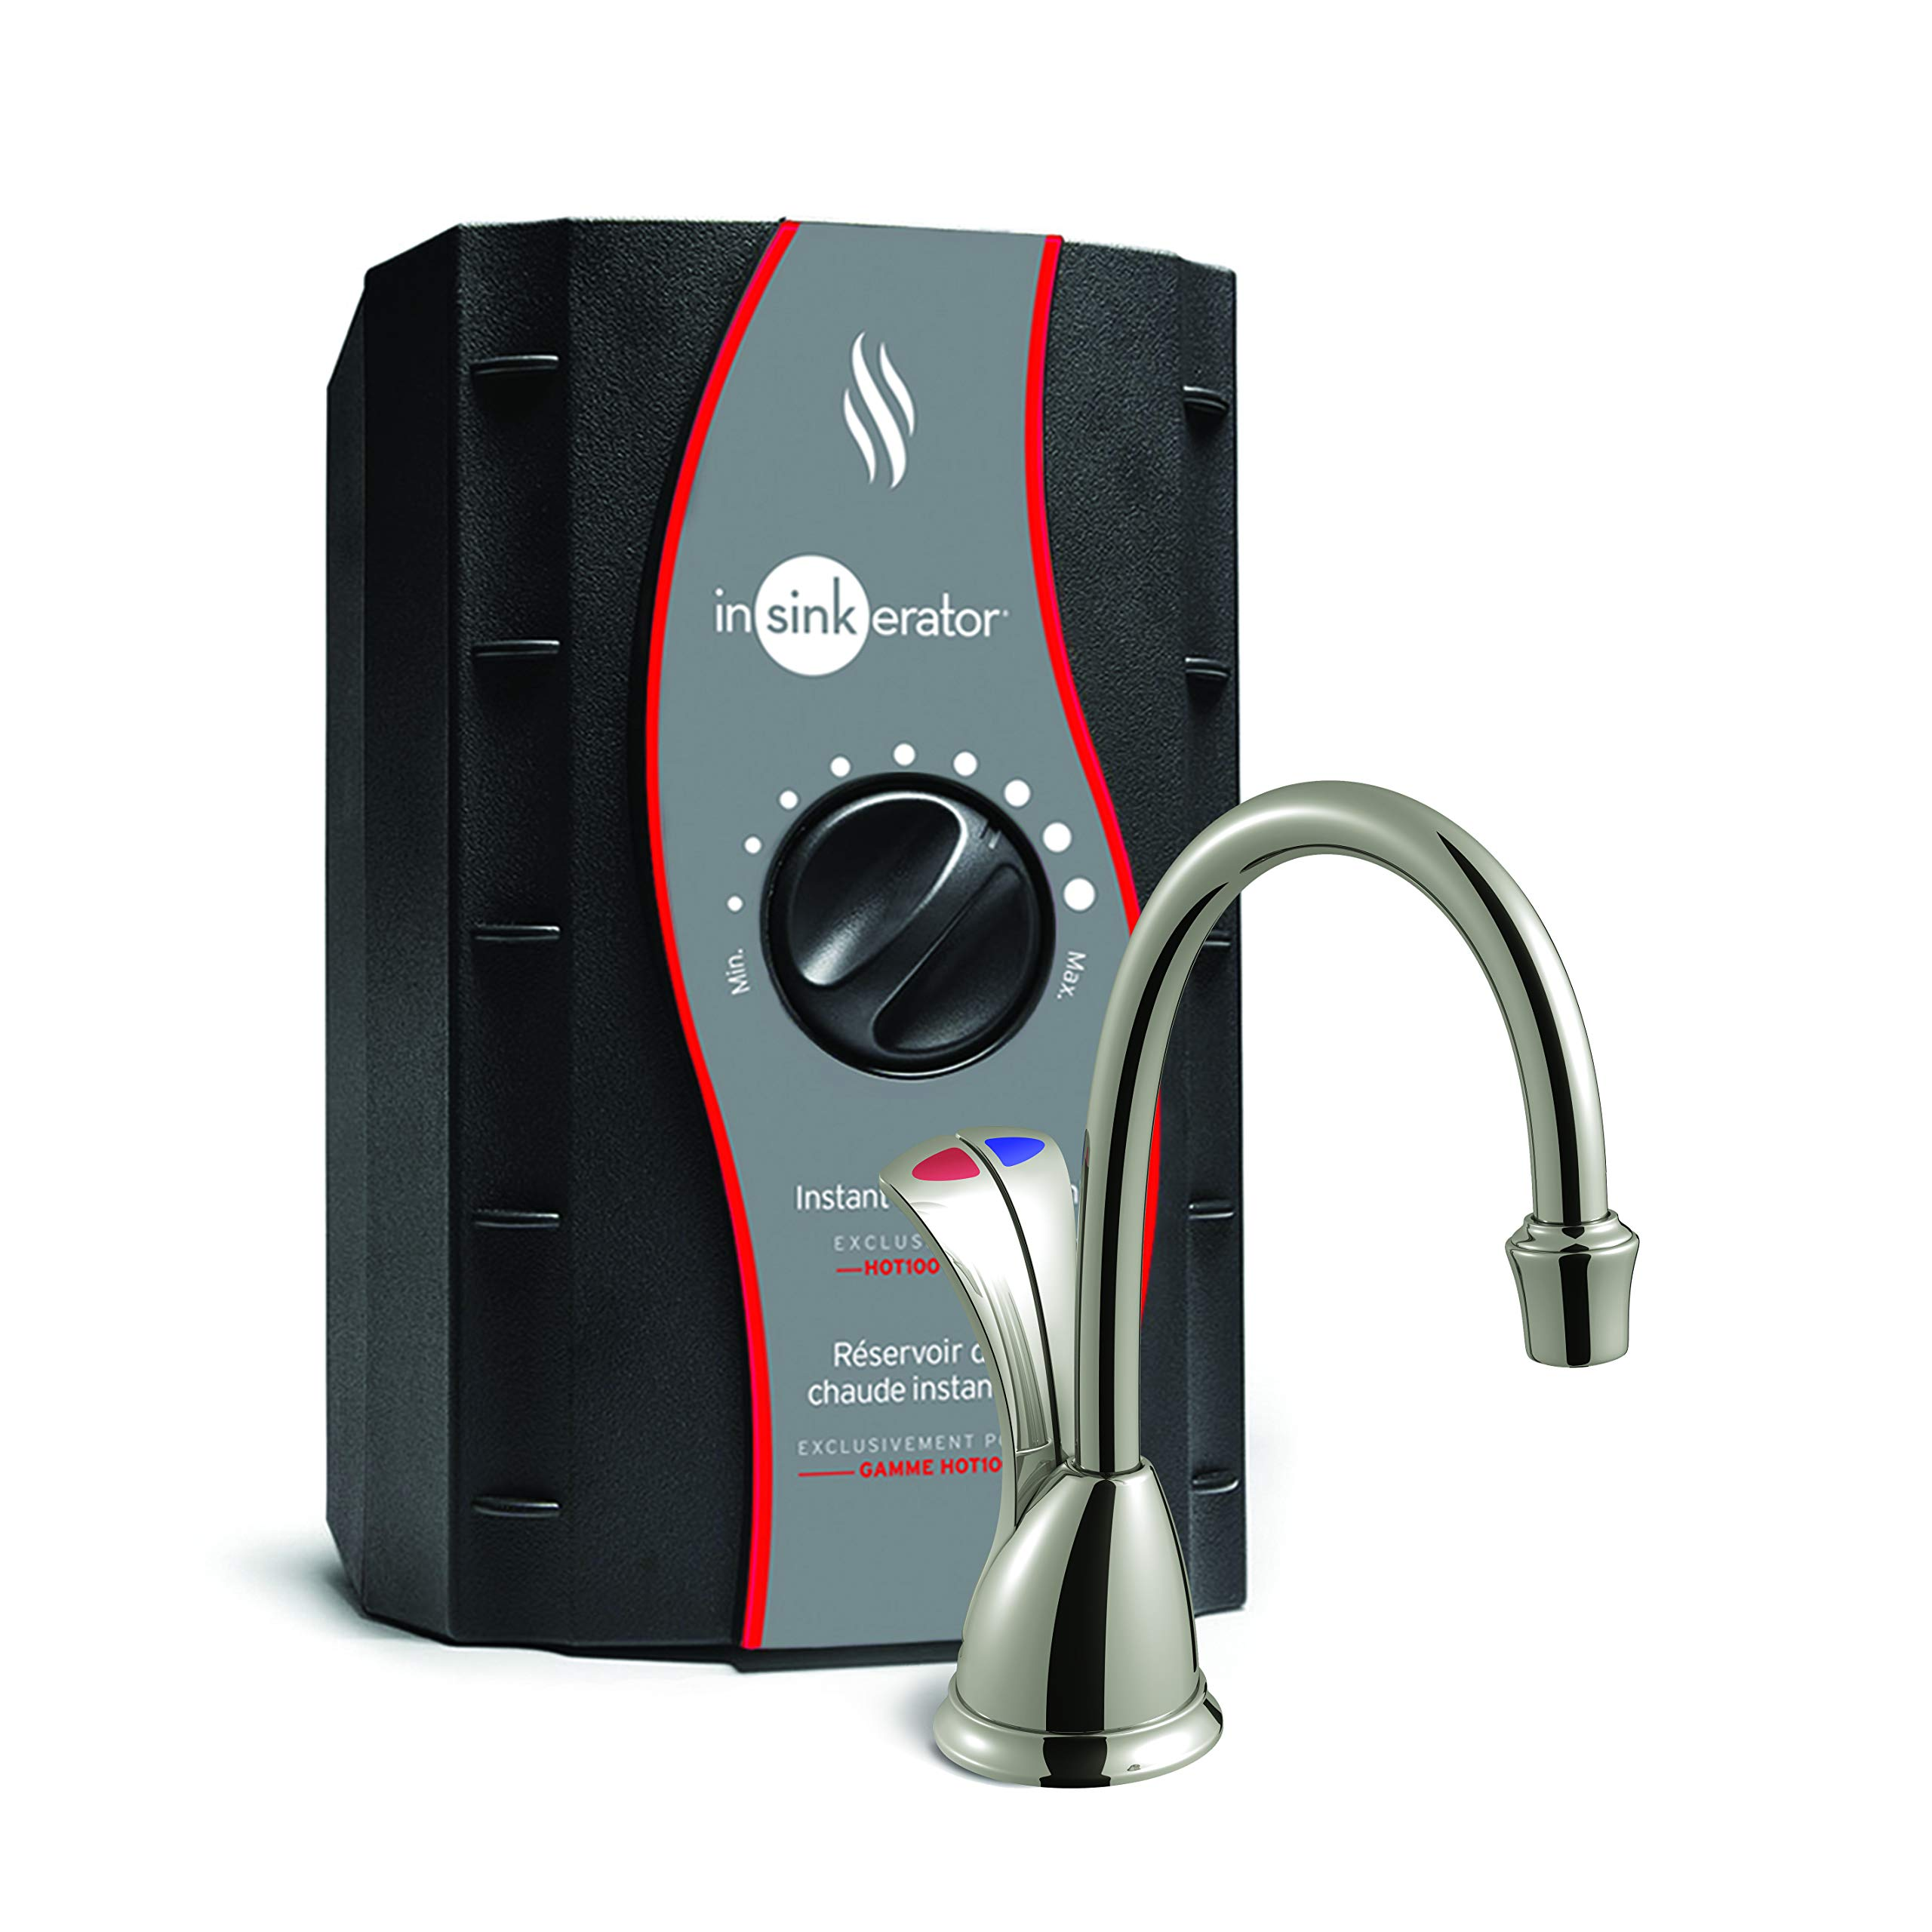 InSinkErator HC-WaveSN-SS Involve Series Wave Hot and Cold Water Dispenser with Stainless Steel Tank, Satin Nickel